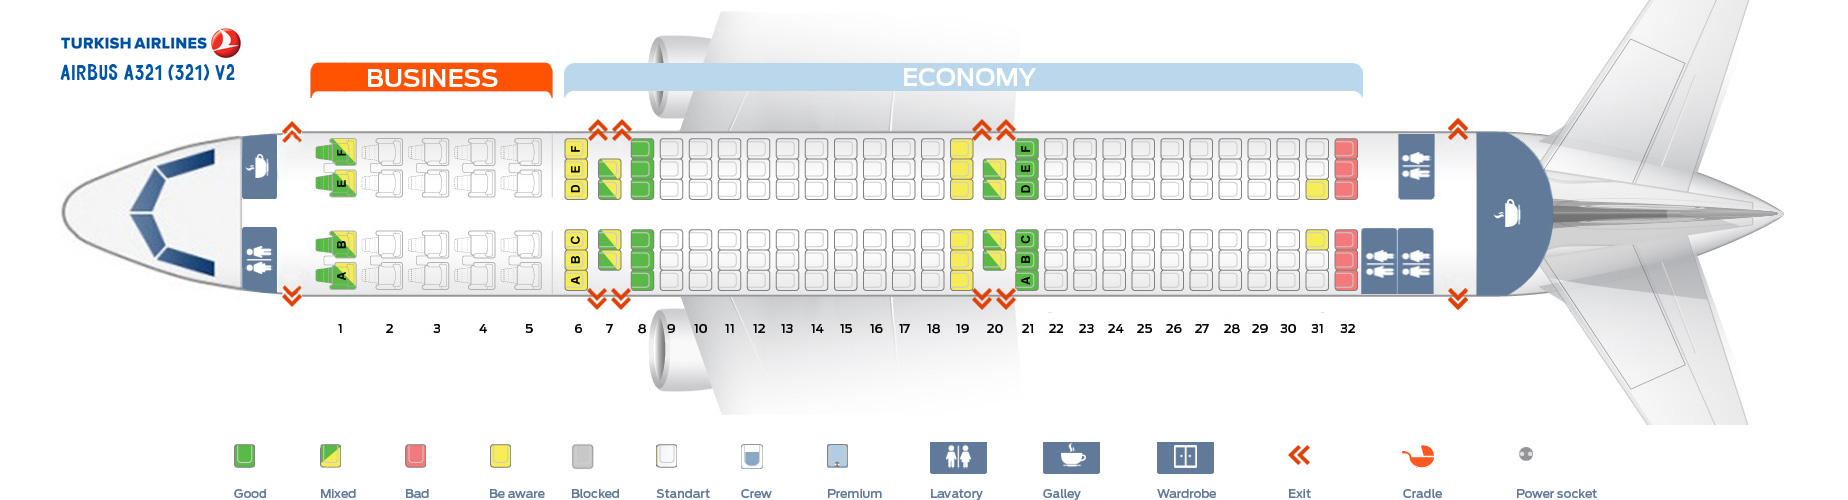 Seat Map Airbus A321-200 V2 Turkish Airlines